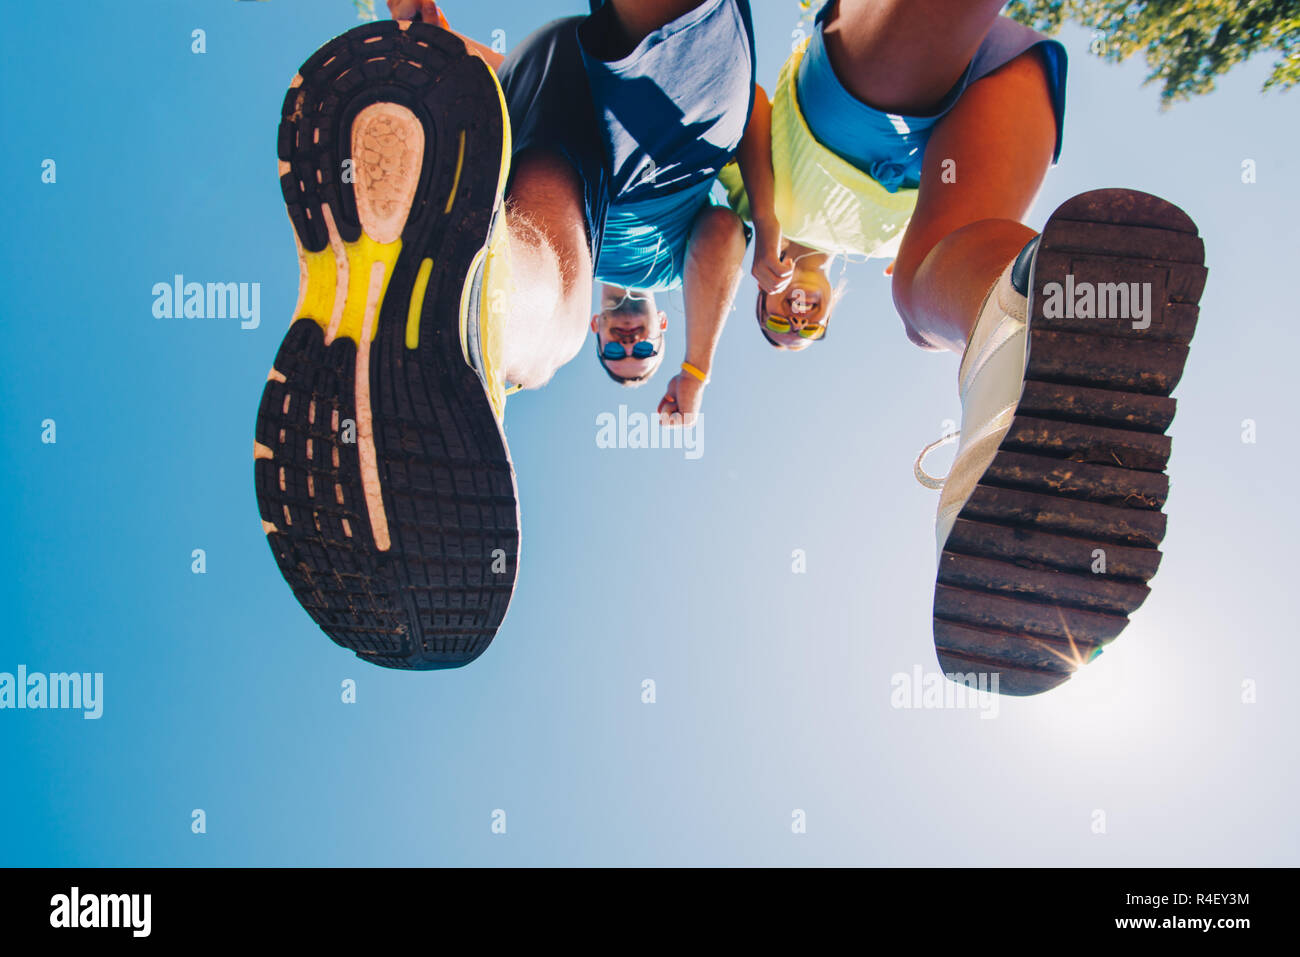 Bottom view cropped image of two people in sneakers while running Stock Photo